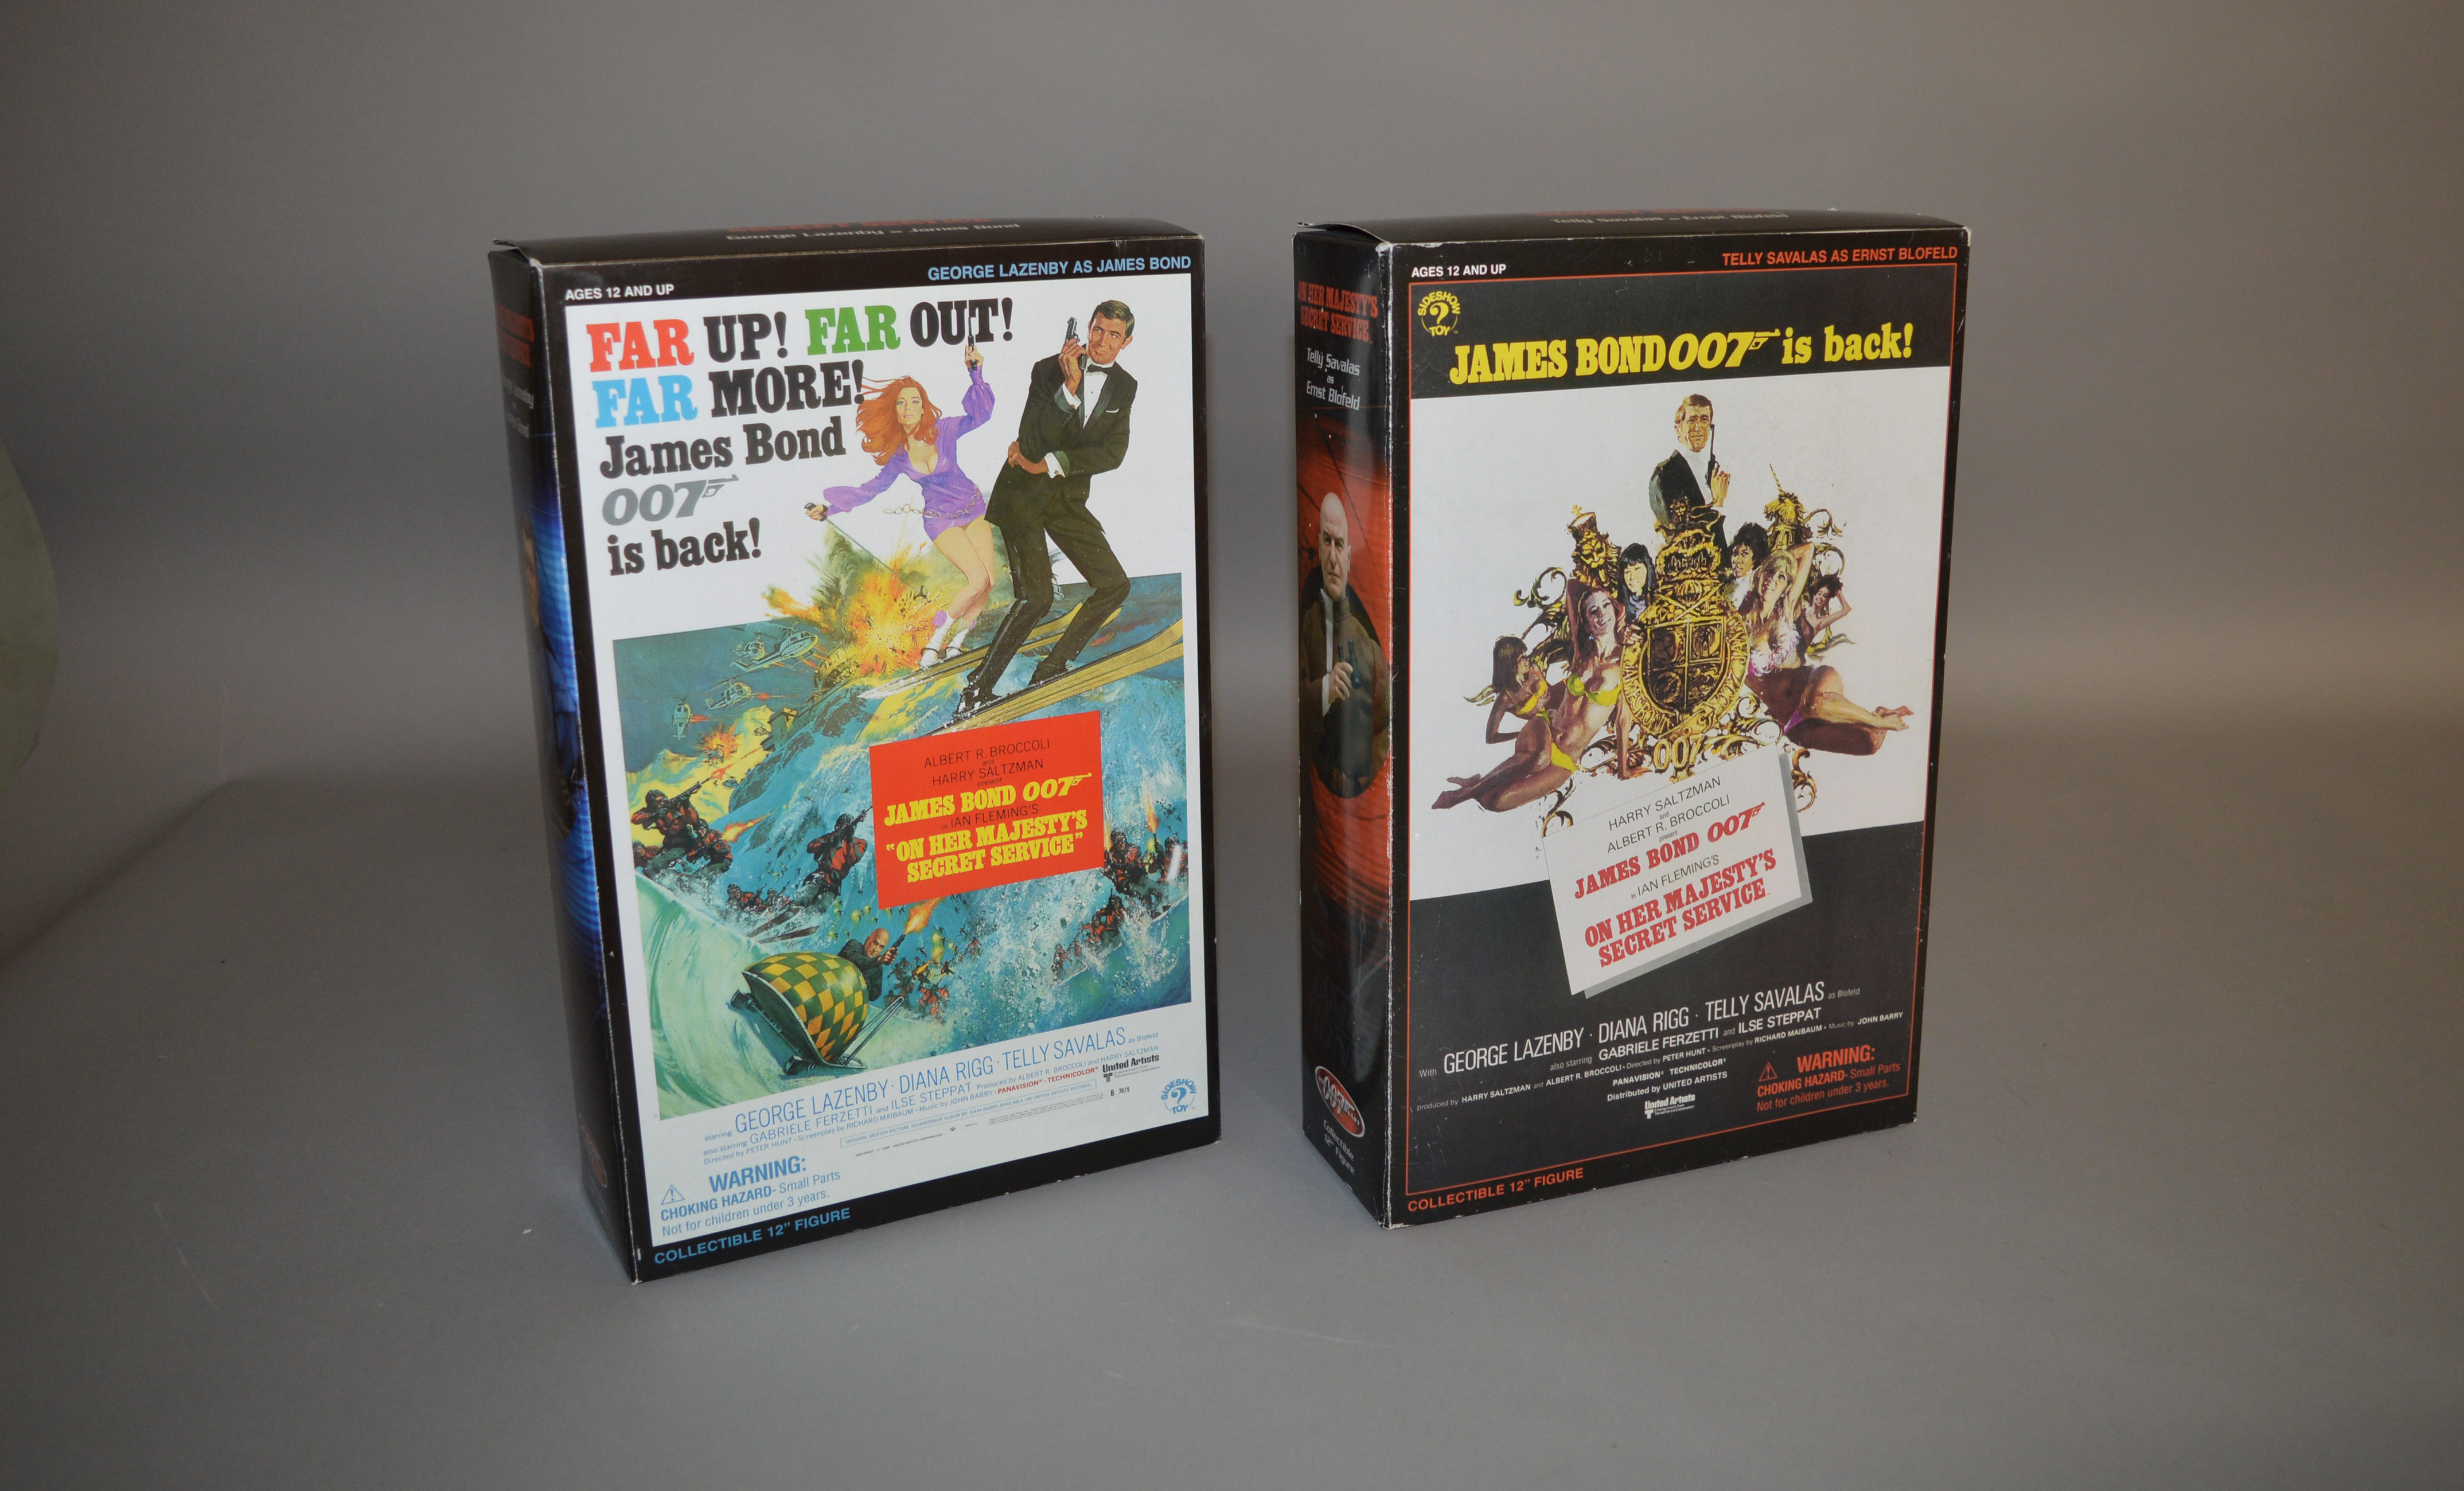 Lot 40 - James Bond 007. 2 boxed Sideshow 12 inch action figures from the film 'On Her Majesty's Secret